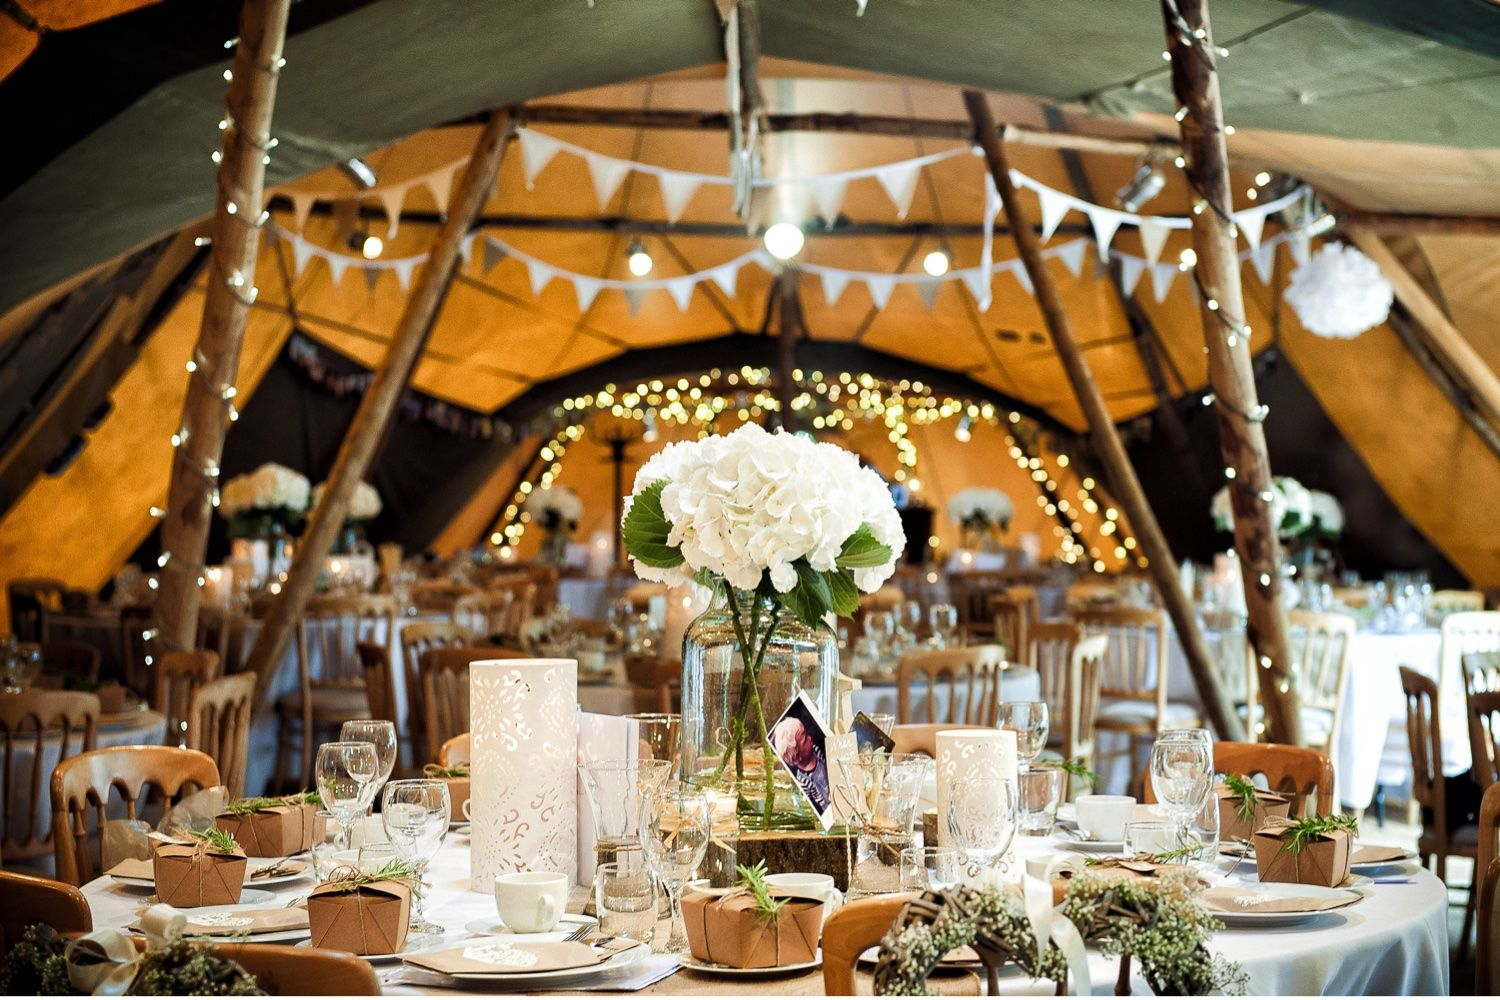 A tipi wedding in the woods tipi wedding tipi and wedding gorgeous tipi wedding decoration photography by andy hook wedding tipi junglespirit Choice Image